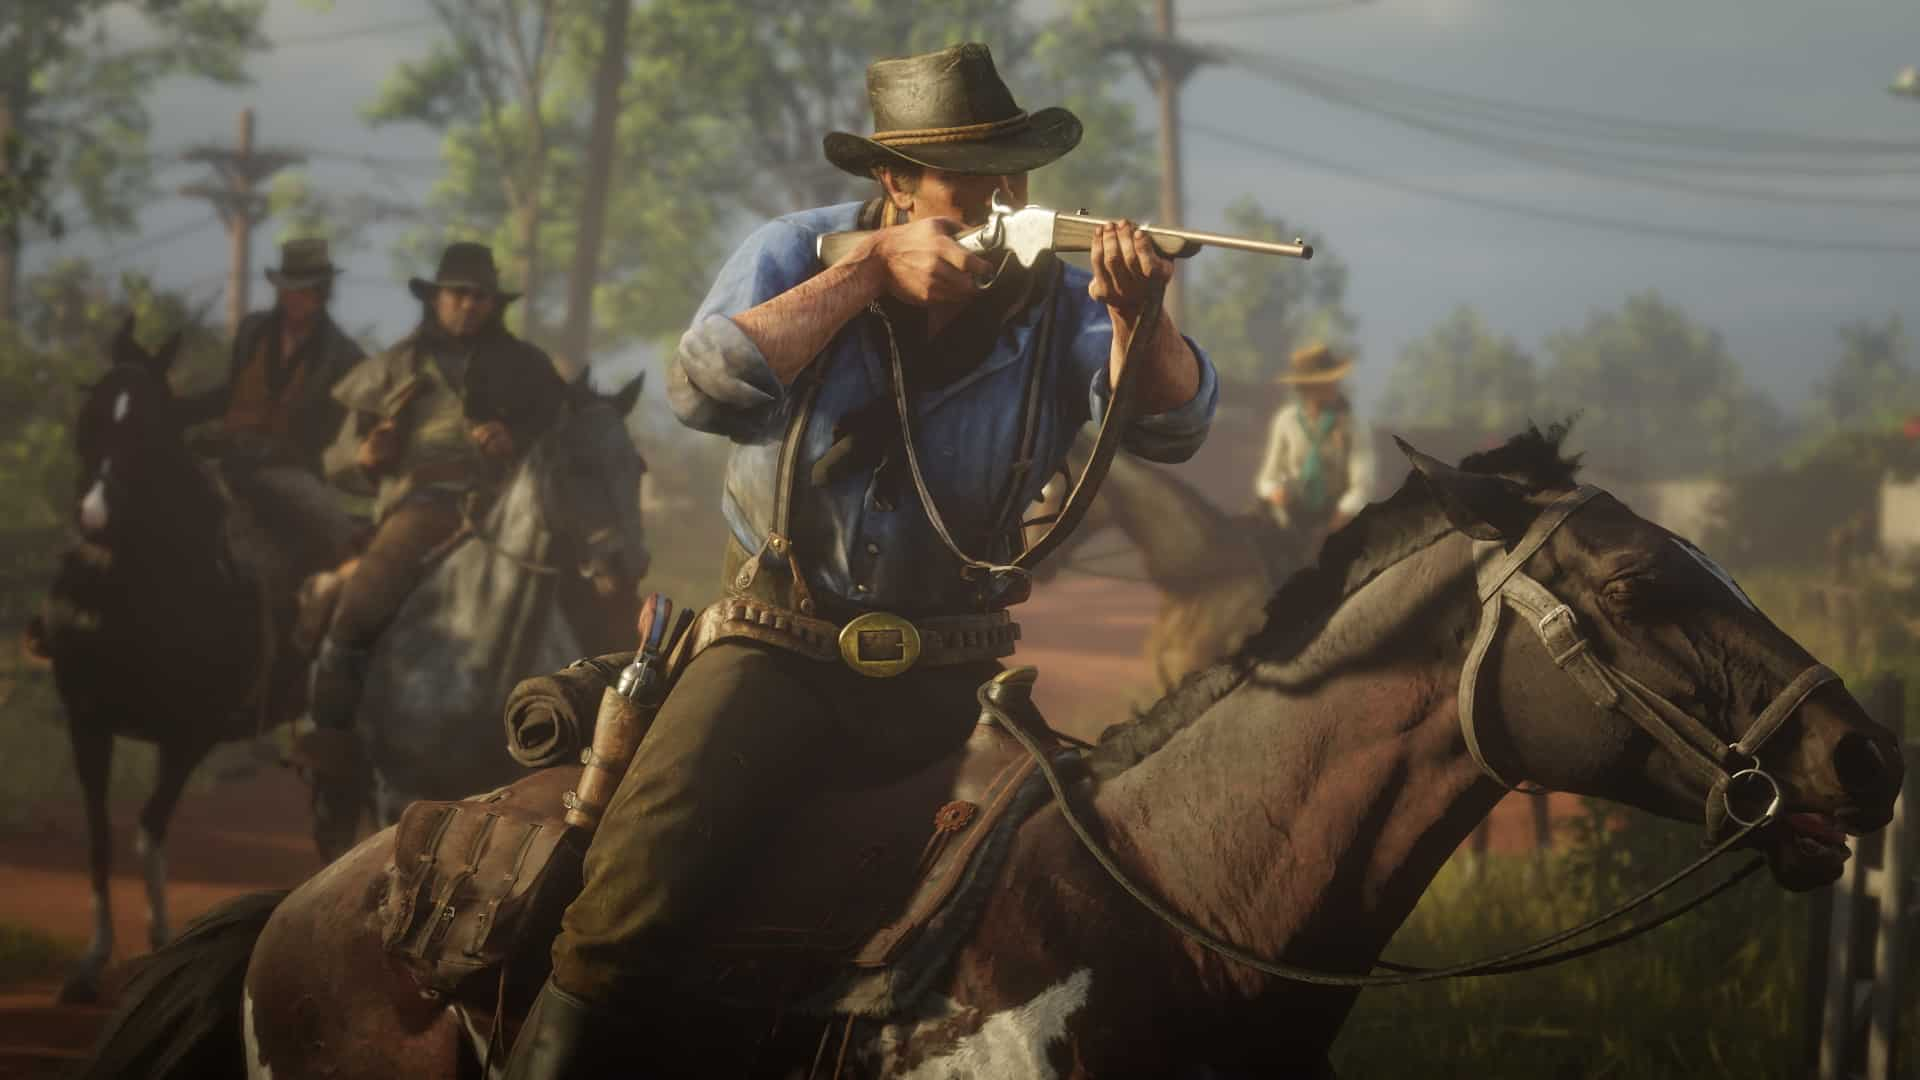 Easy Horse Breaking Red Dead Redemption 2 Cheat For Xbox 360, Xbox One